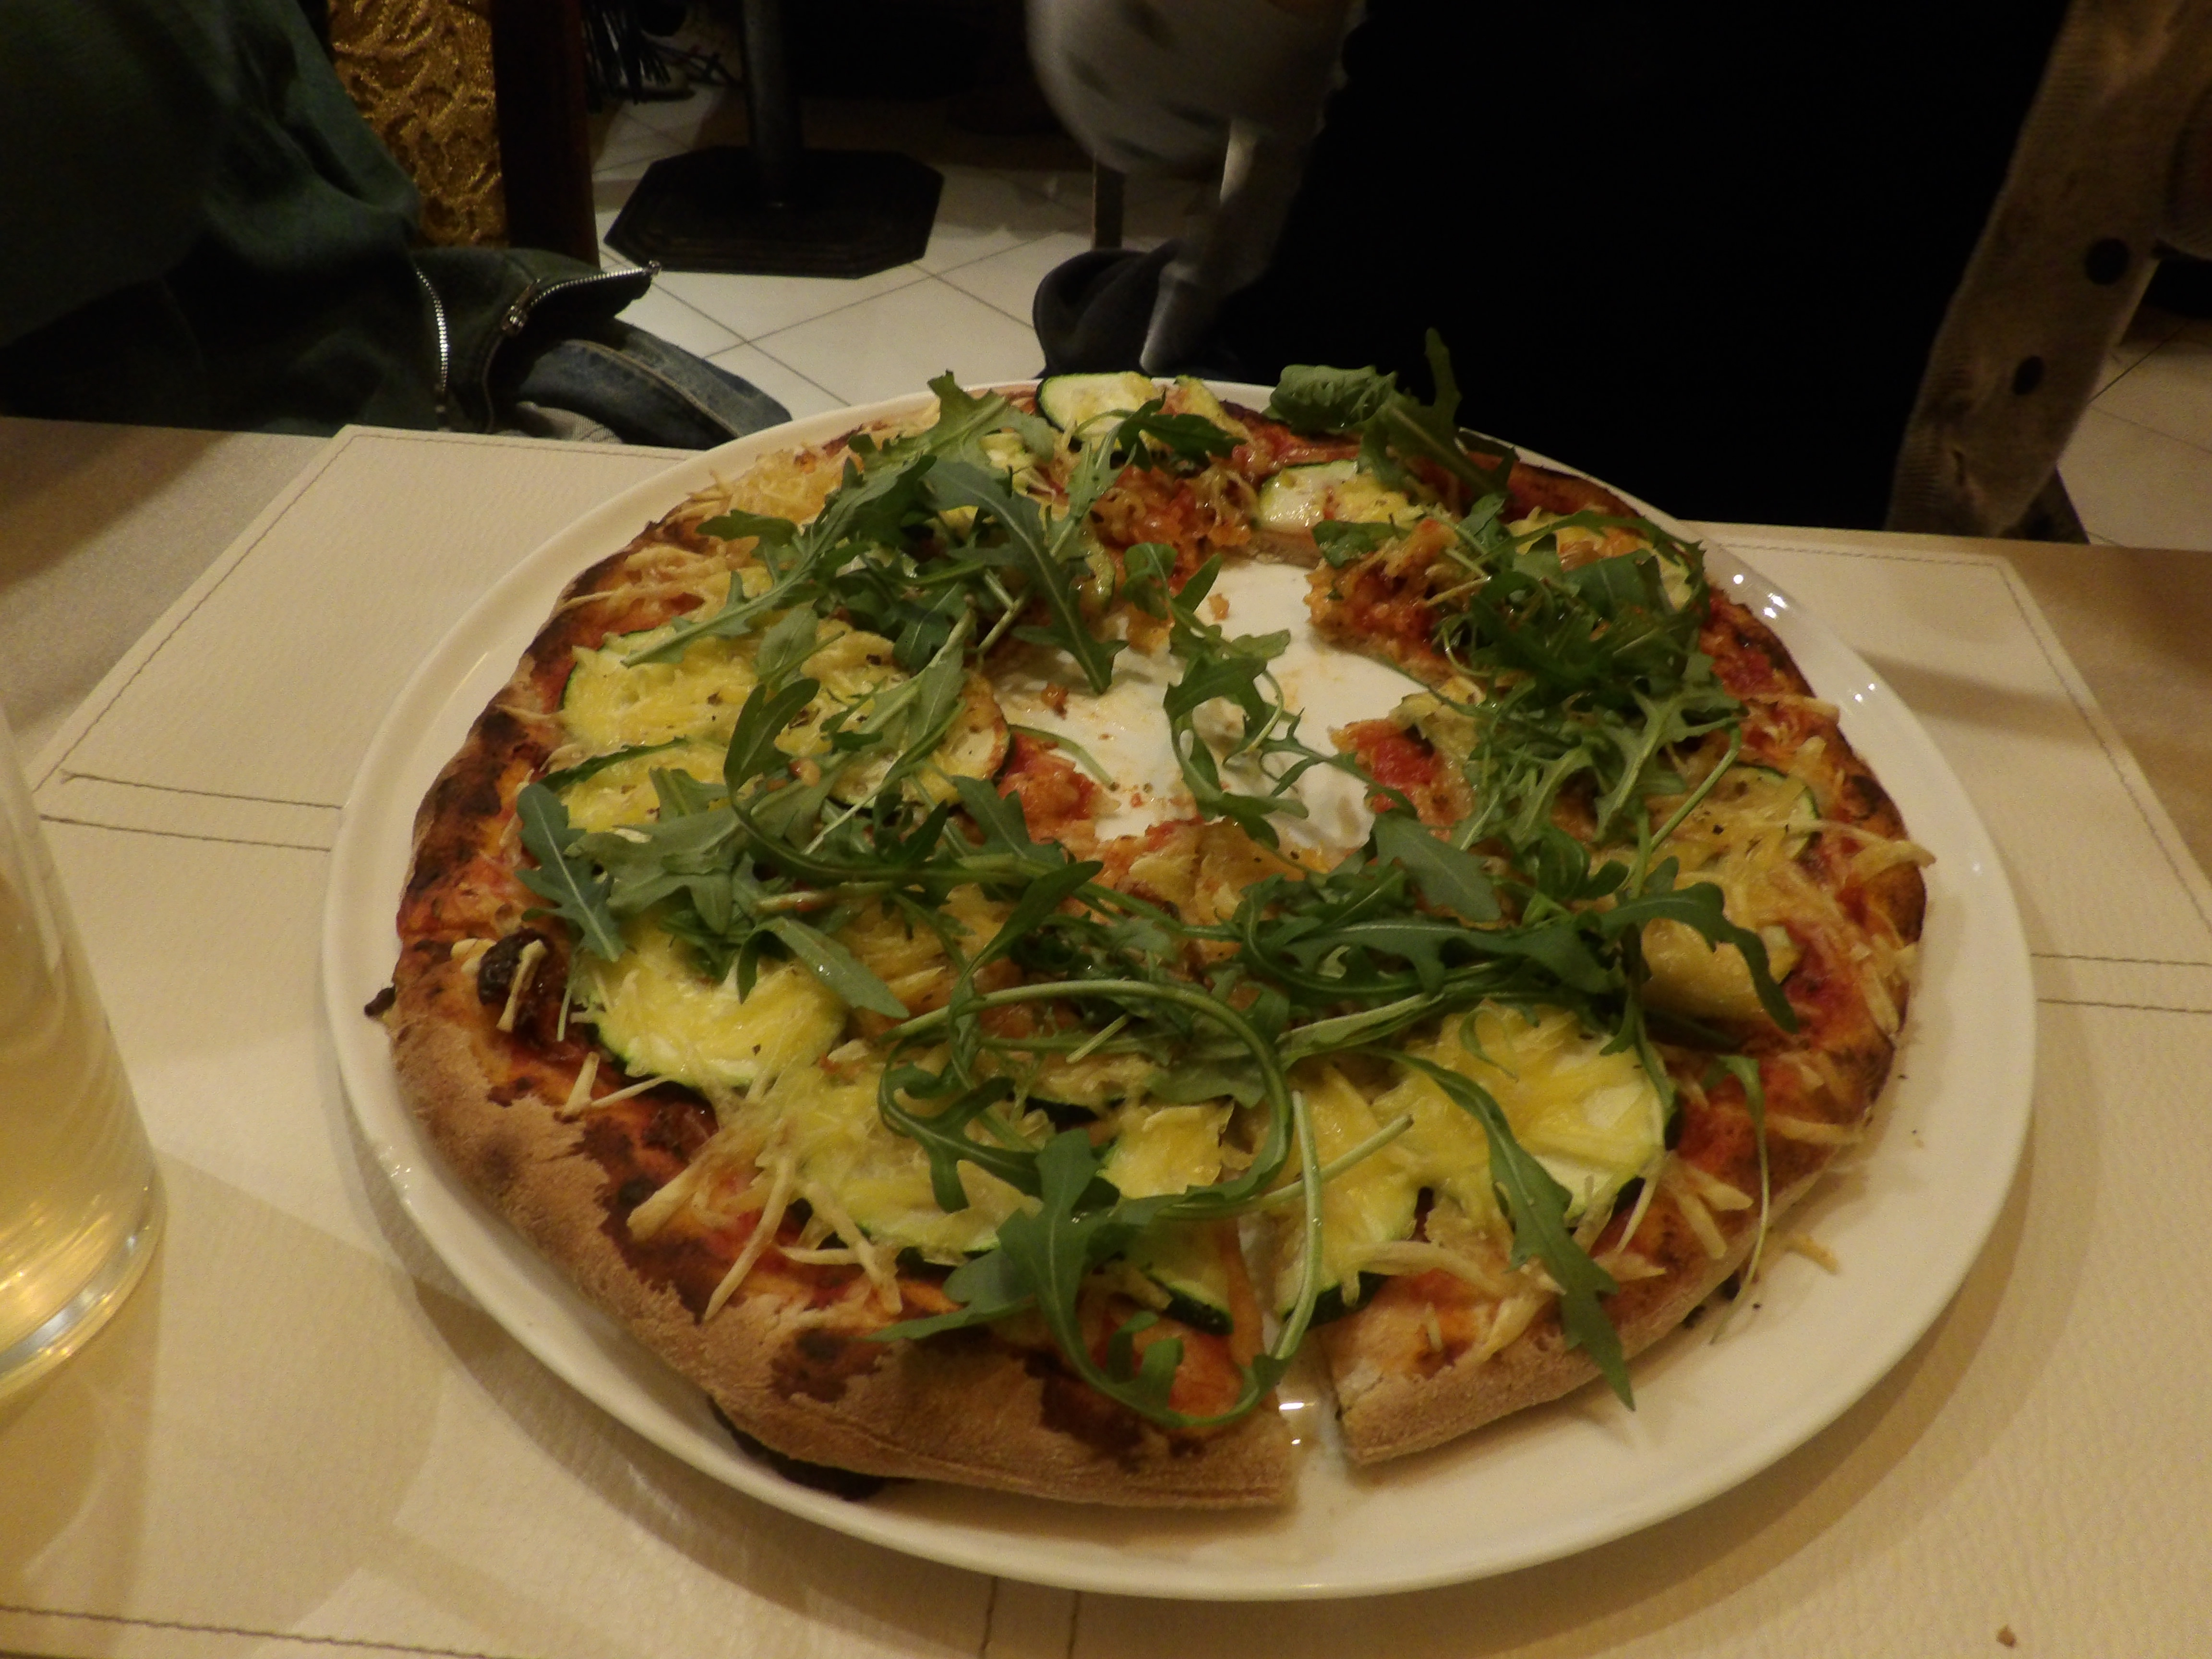 Top 5 Vegan/Vegetarian Places to Eat in Budapest